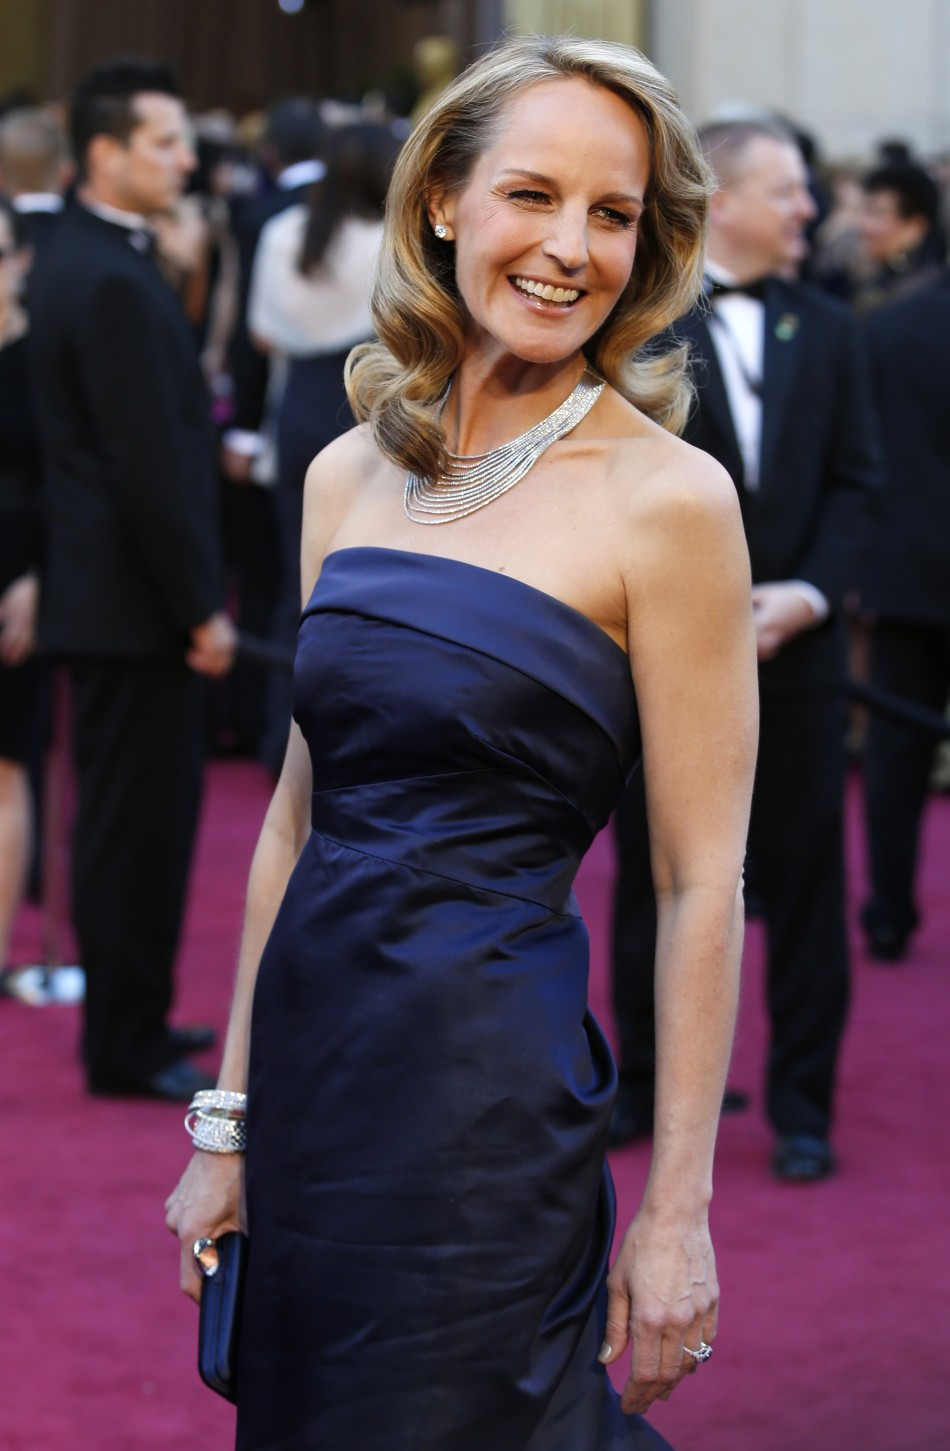 Actress Helen Hunt arrives at the 85th Academy Awards in Hollywood, California February 24, 2013